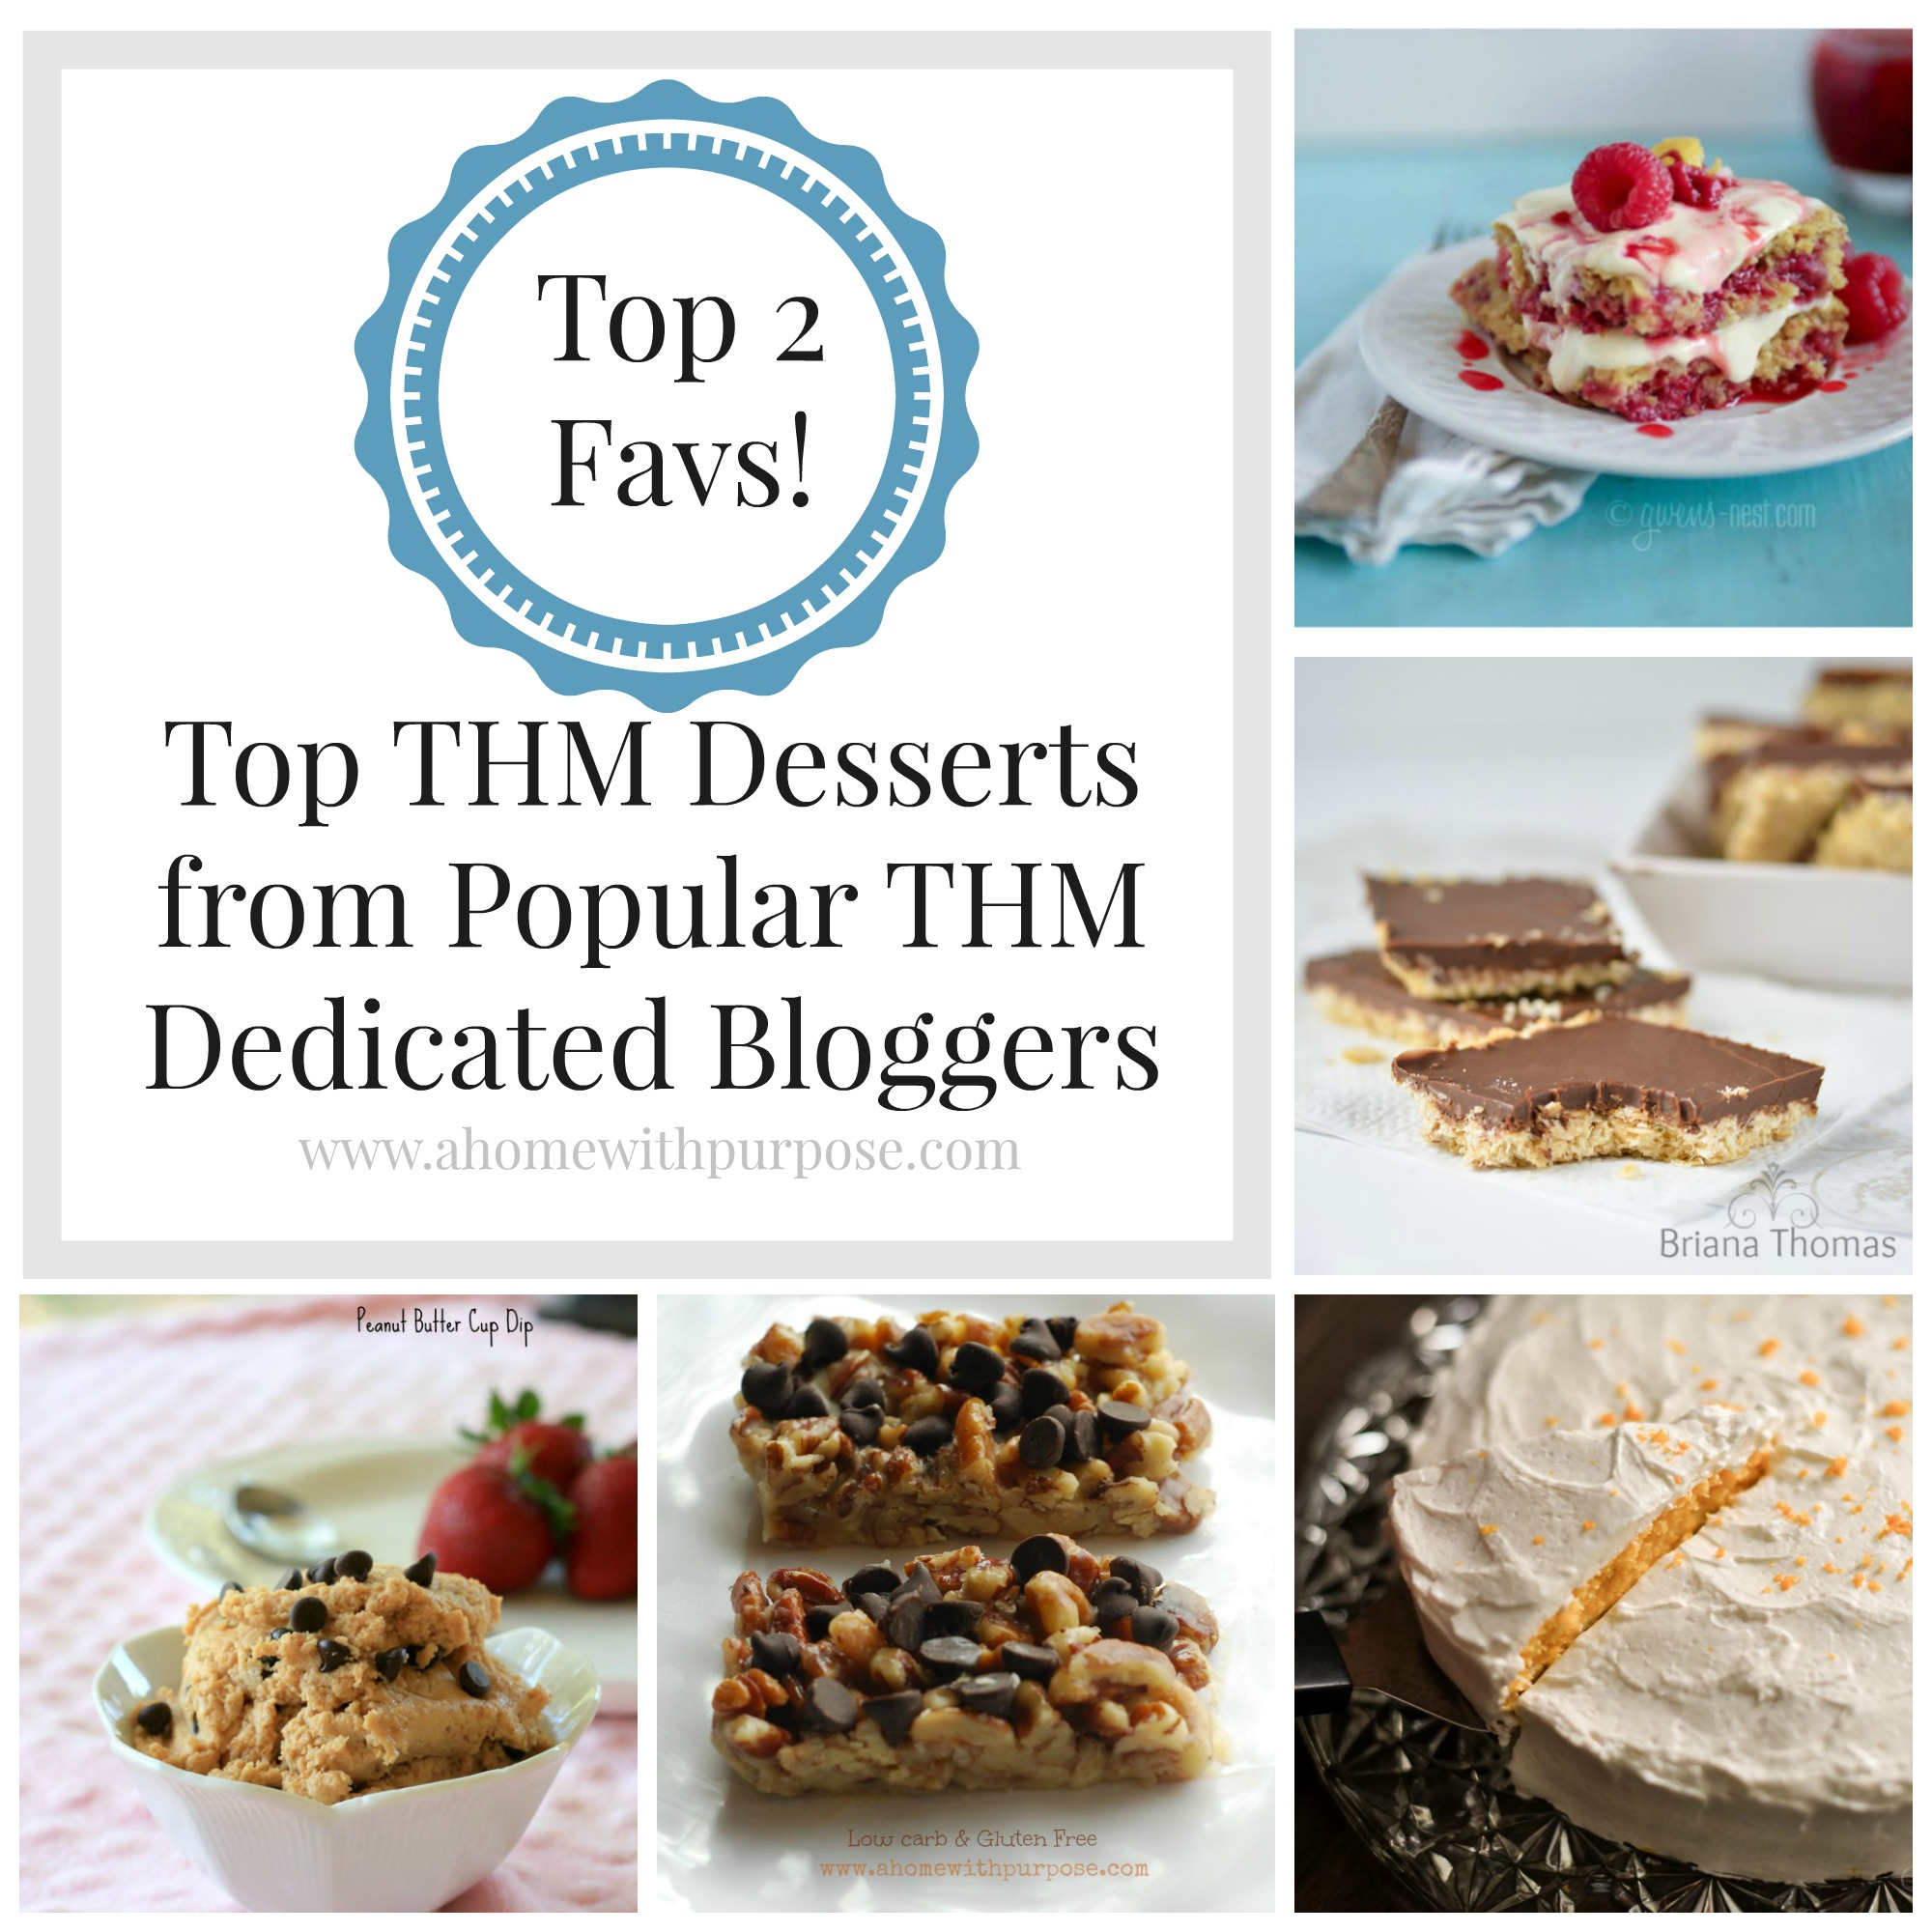 Top 2 Favorite THM Desserts From Bloggers